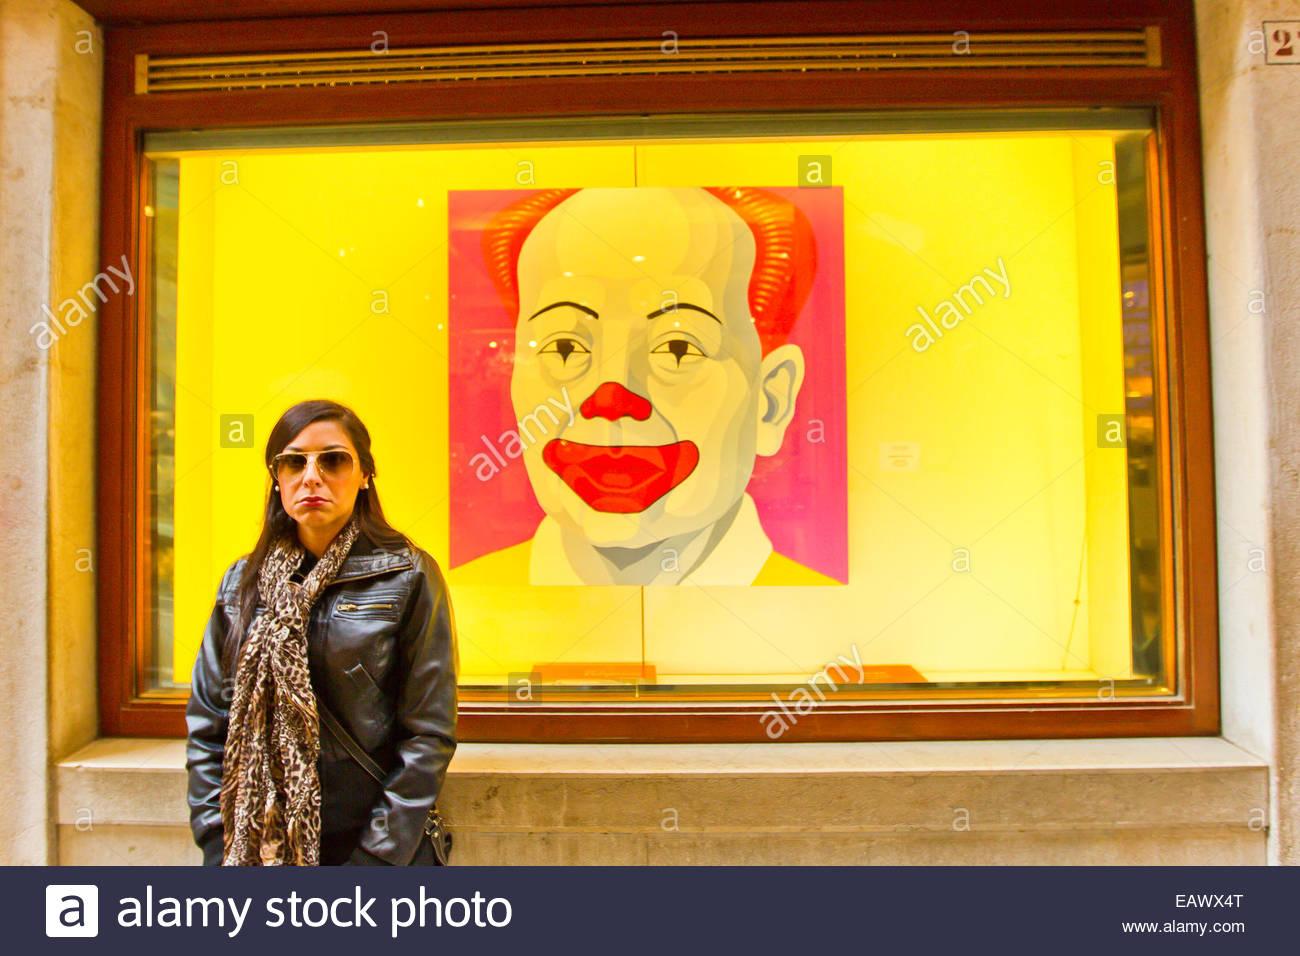 A woman stands in front of a painting of Ronald McDonald in a window display in Venice. - Stock Image